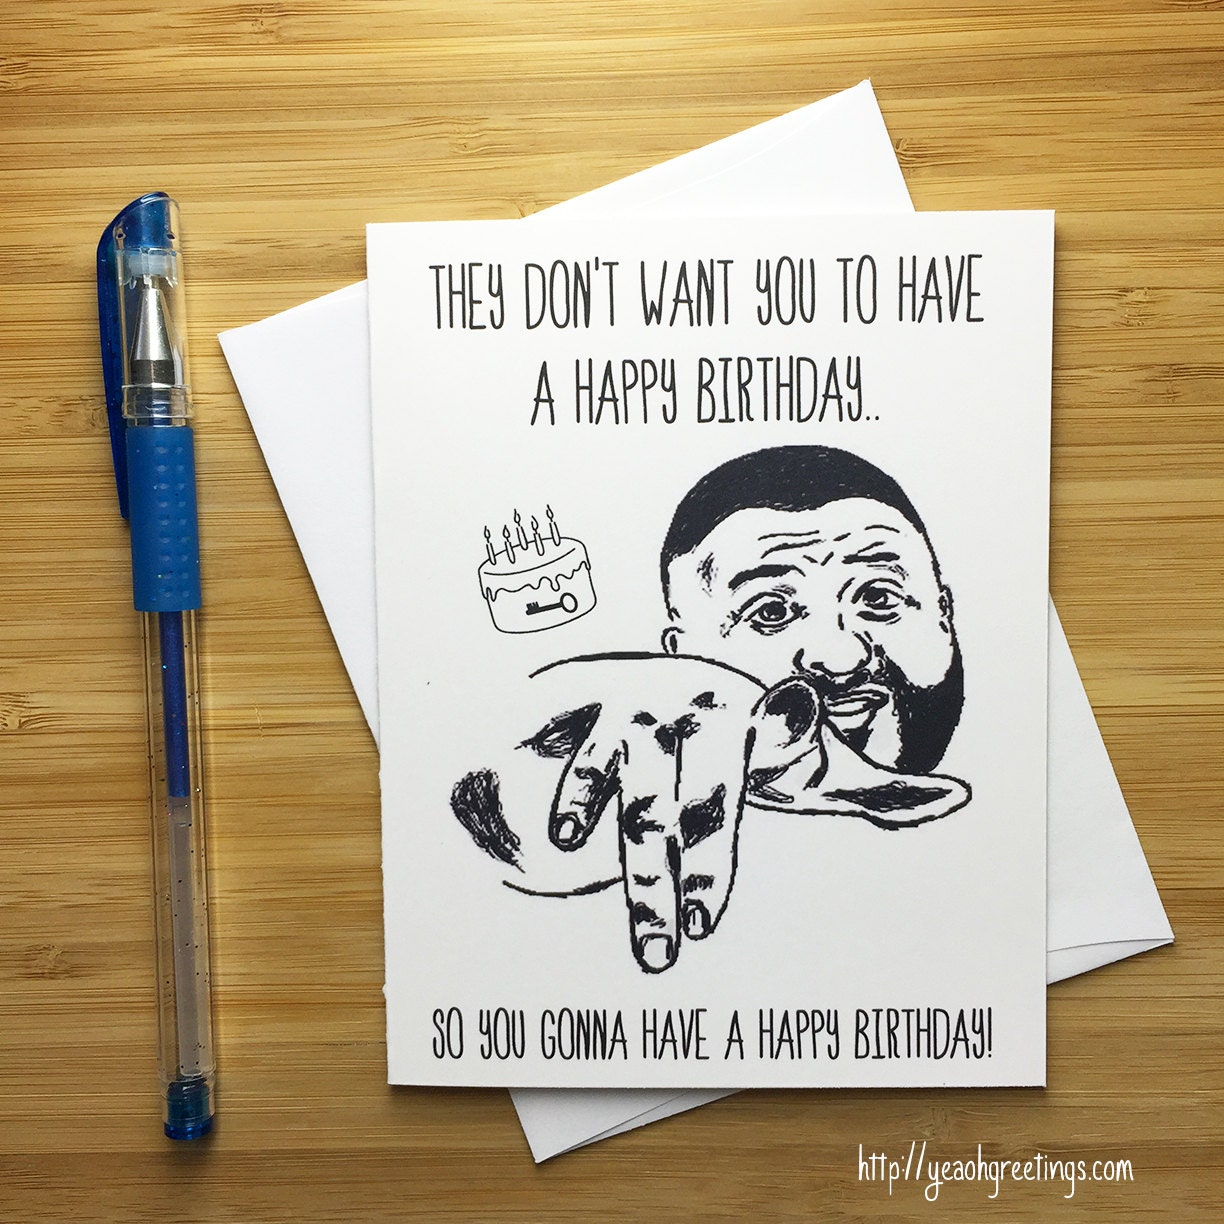 Birthday Card With Music gangcraftnet – Funny Musical Birthday Cards